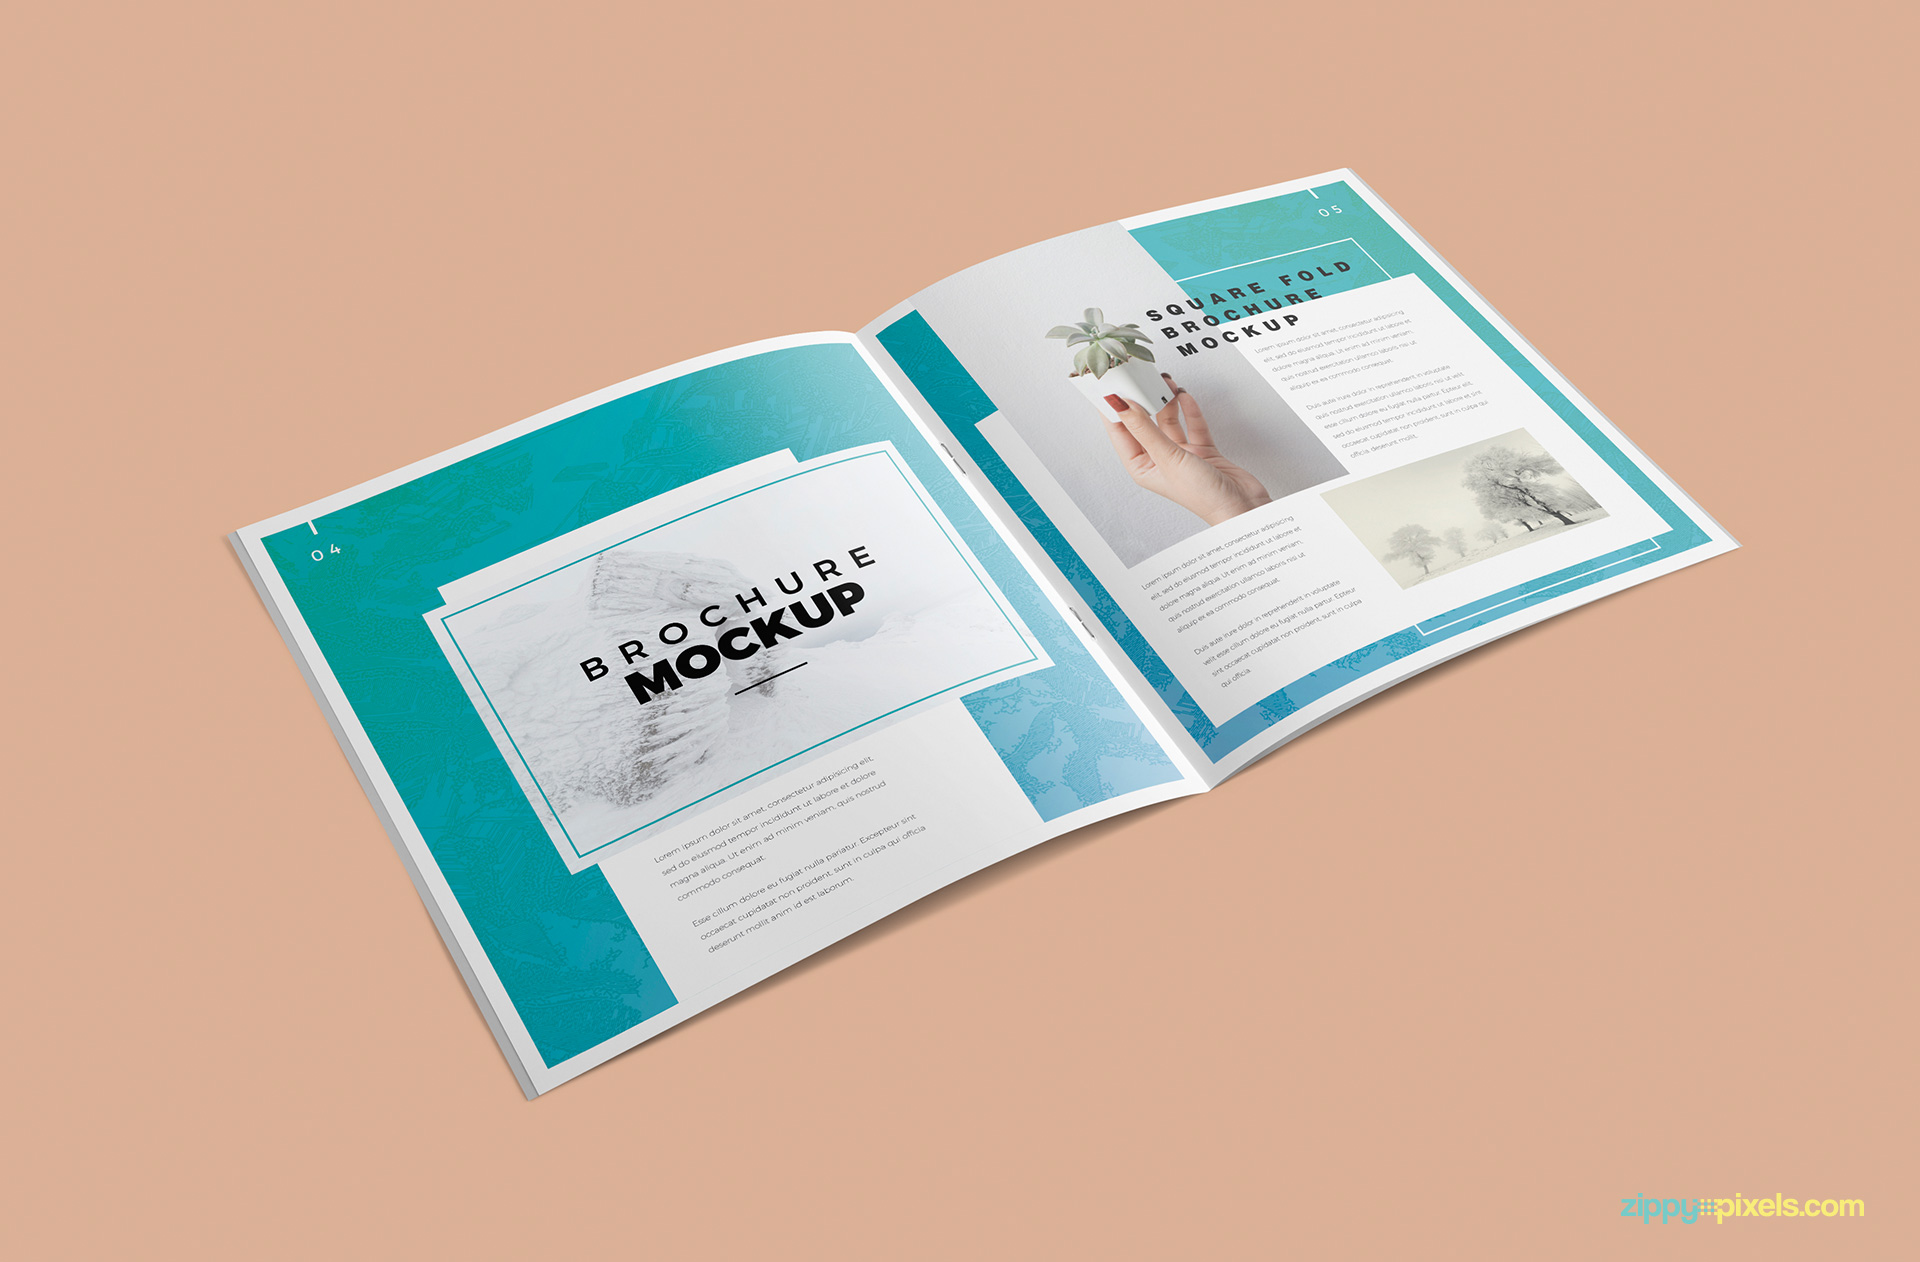 Elegantly designed brochure mockup.